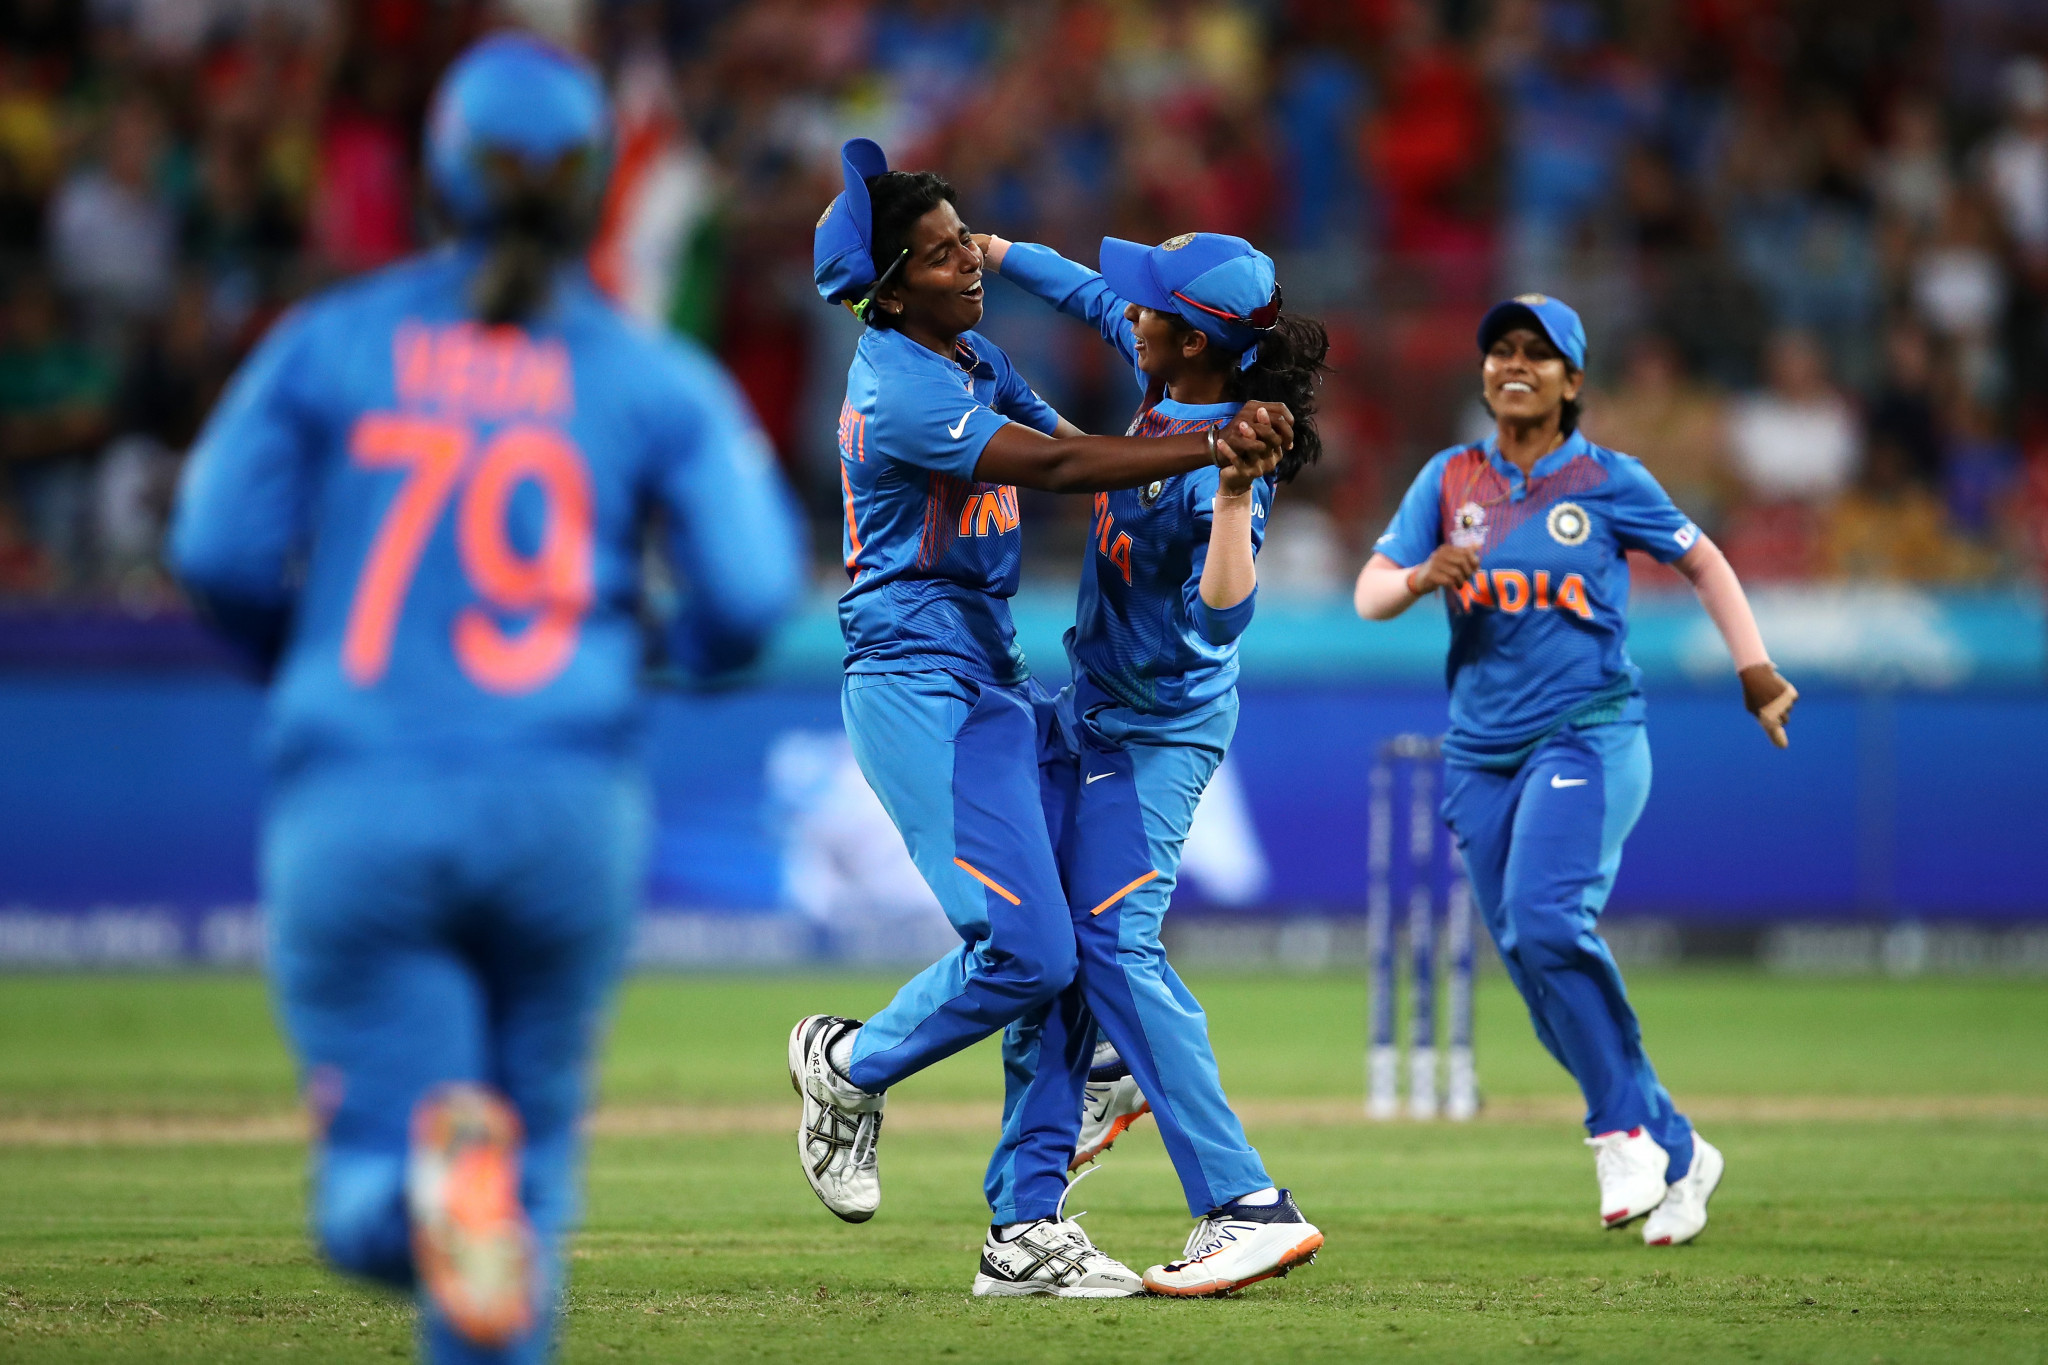 BCCI to send Indian women's cricket team to Birmingham 2022 Commonwealth Games